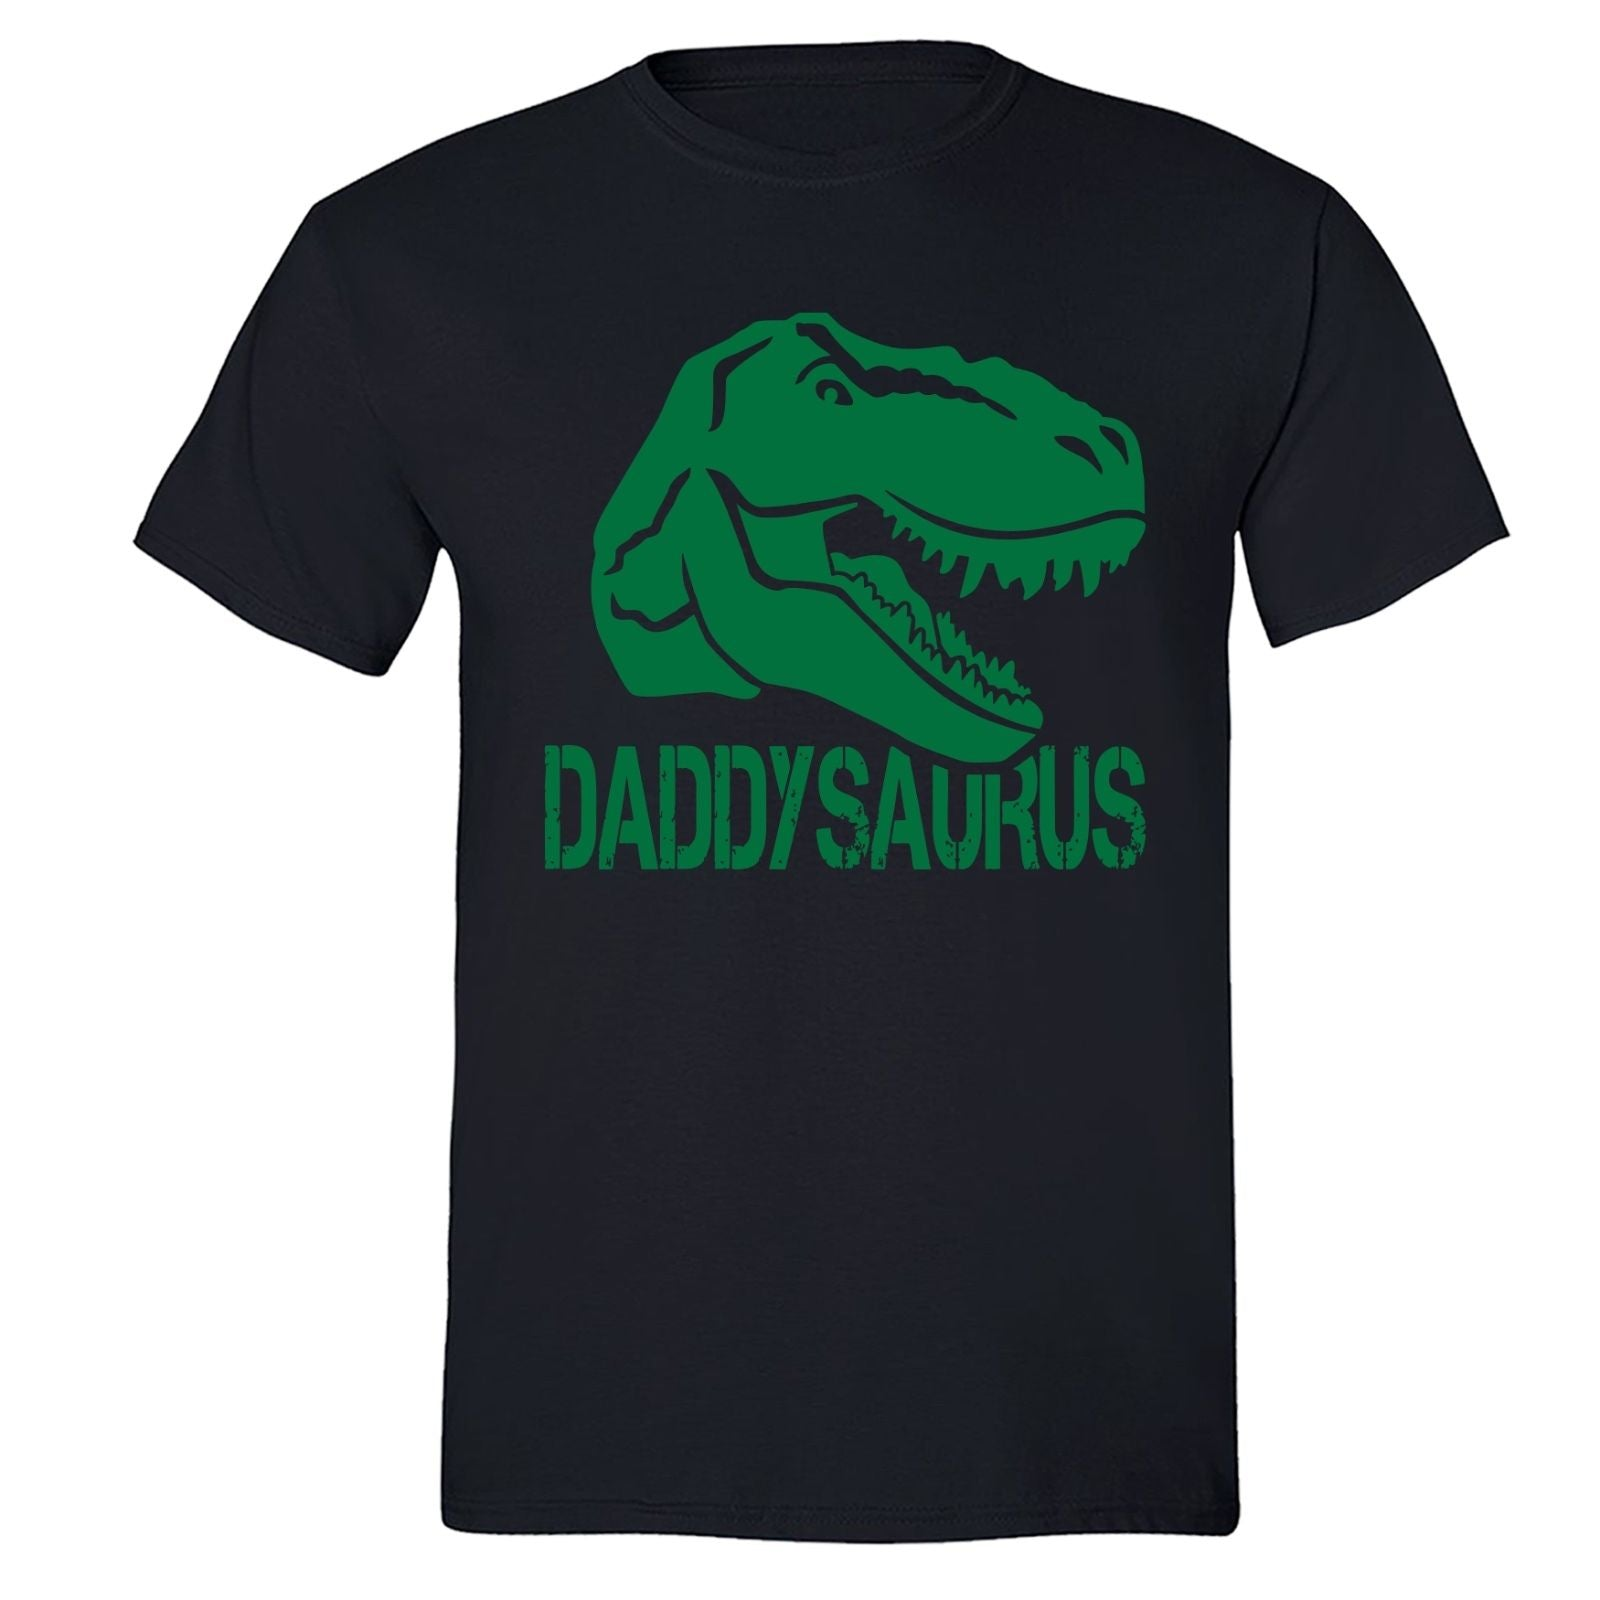 9b39a62cbd5c88 XtraFly Apparel Men s Daddysaurus T-Rex Dinosaur Father s Day Crewneck  Short Sleeve T-shirt